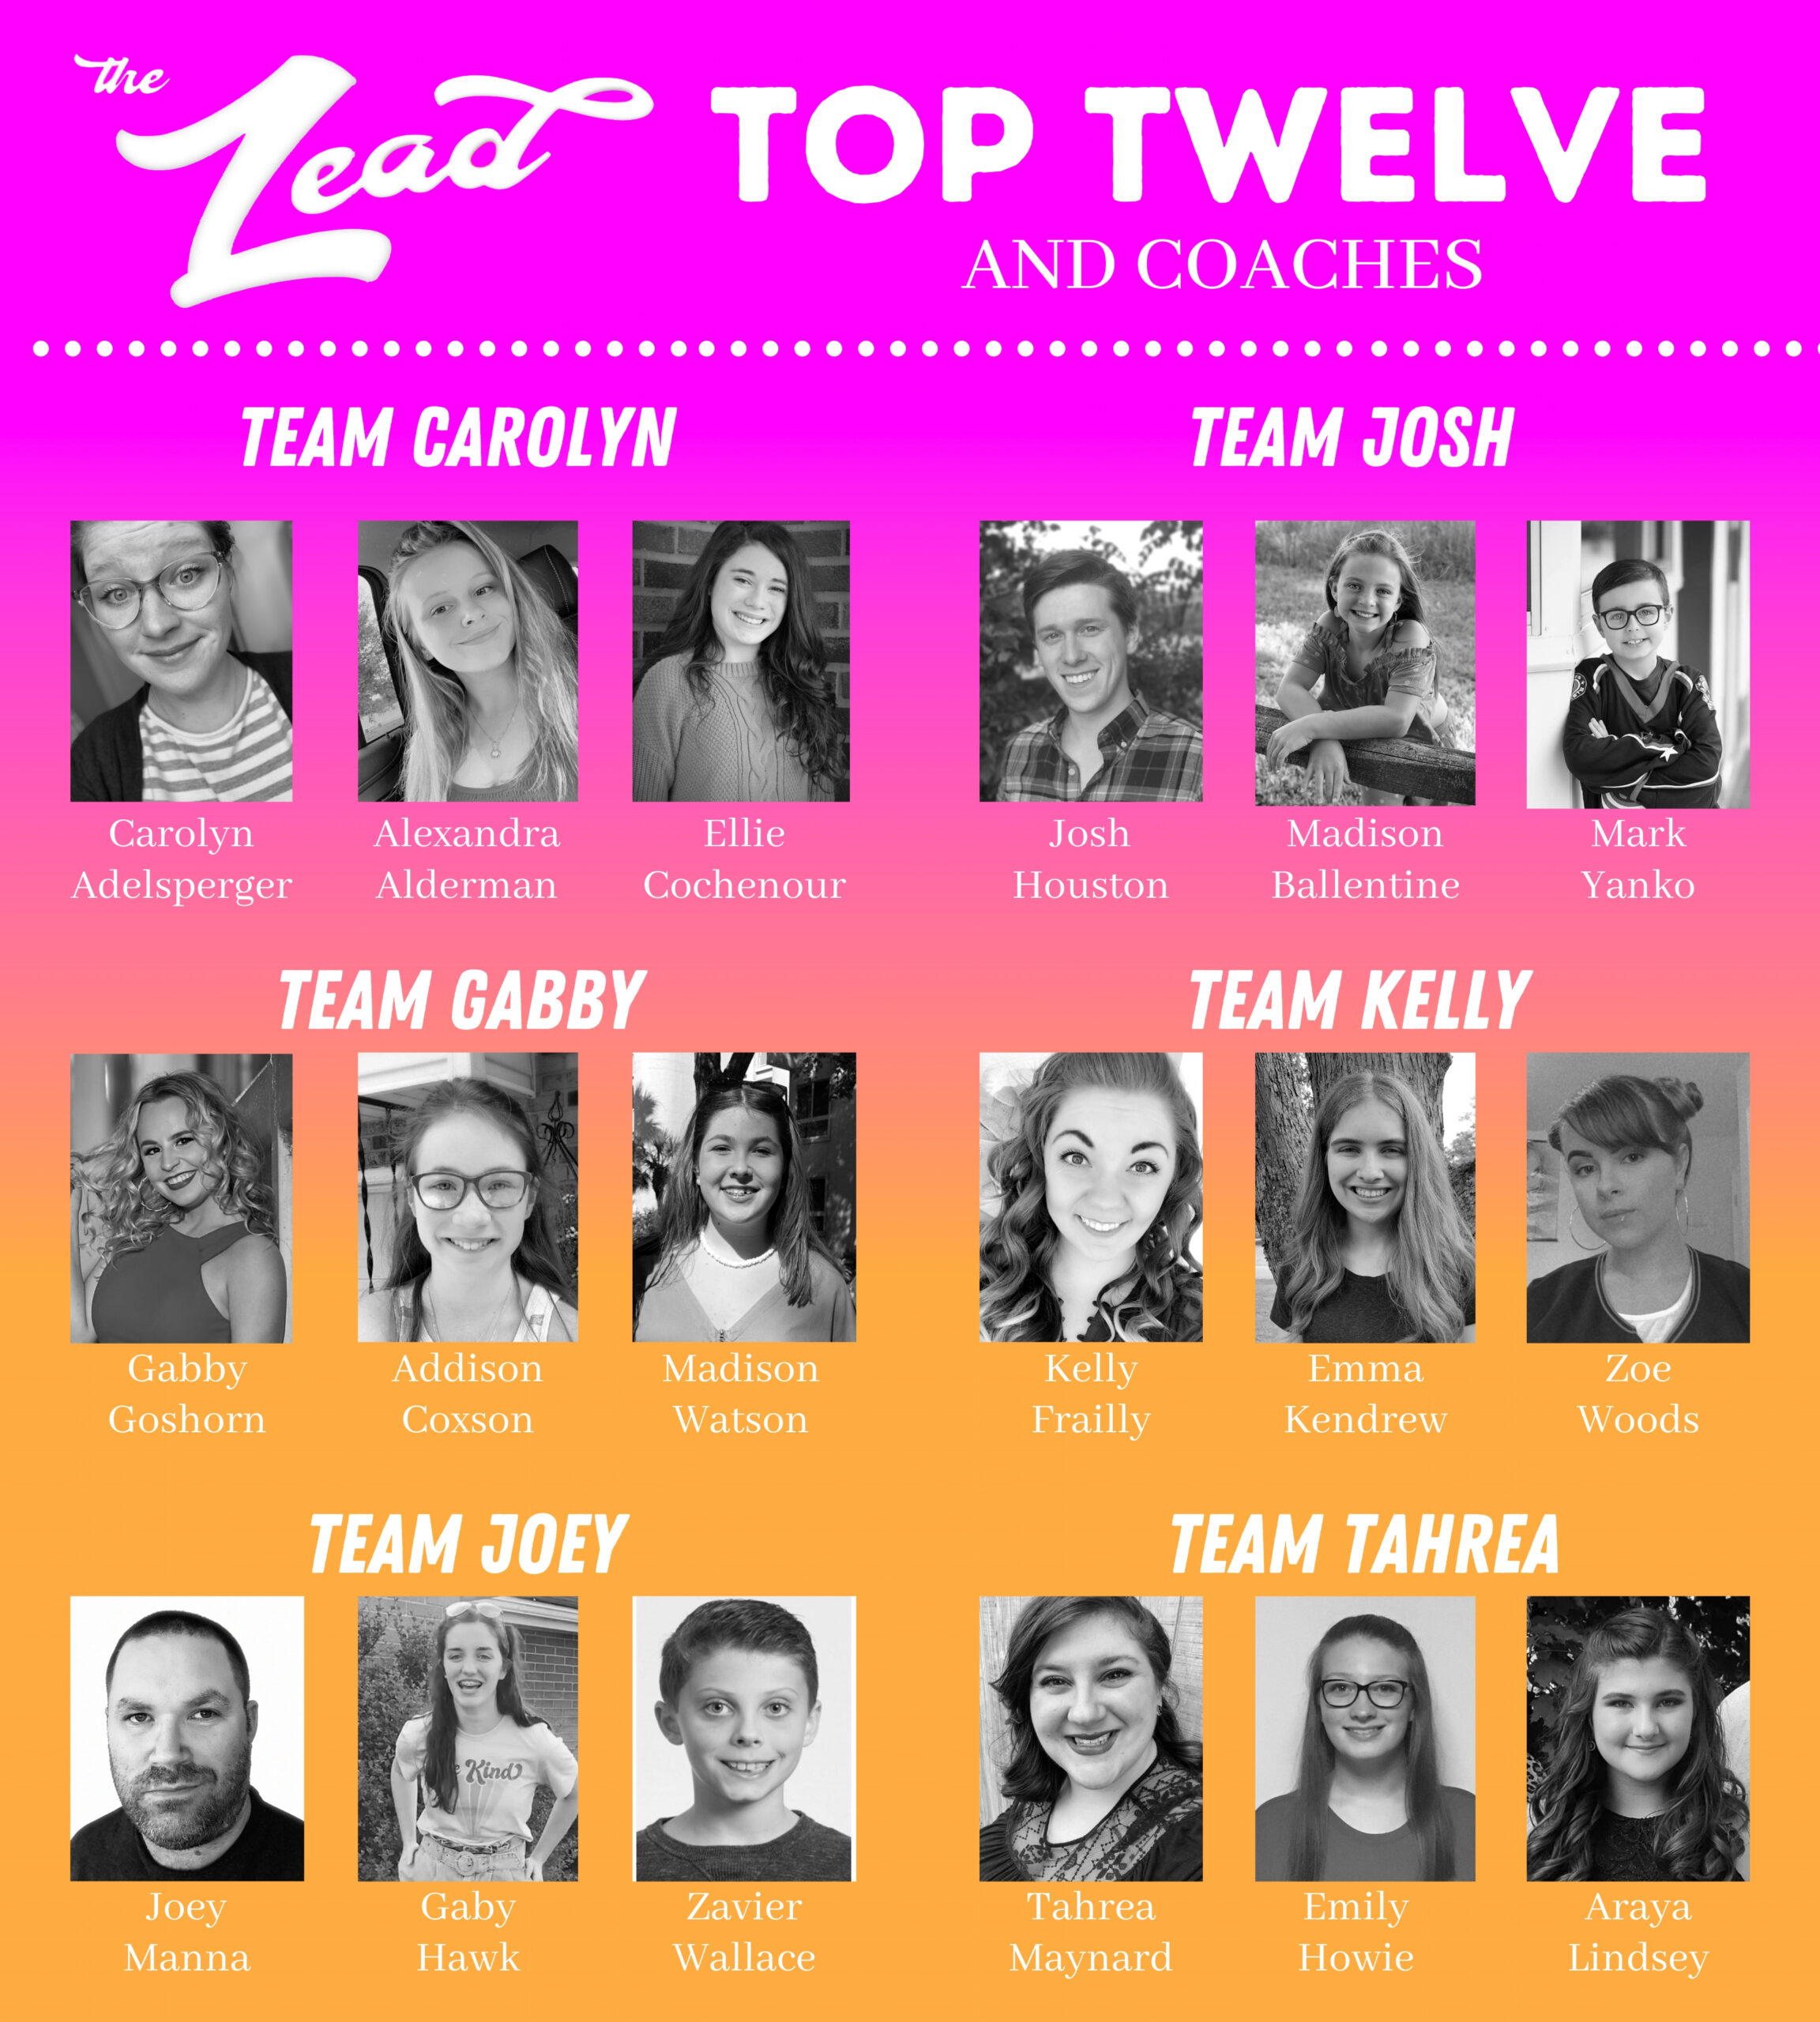 The LEAD Top 12